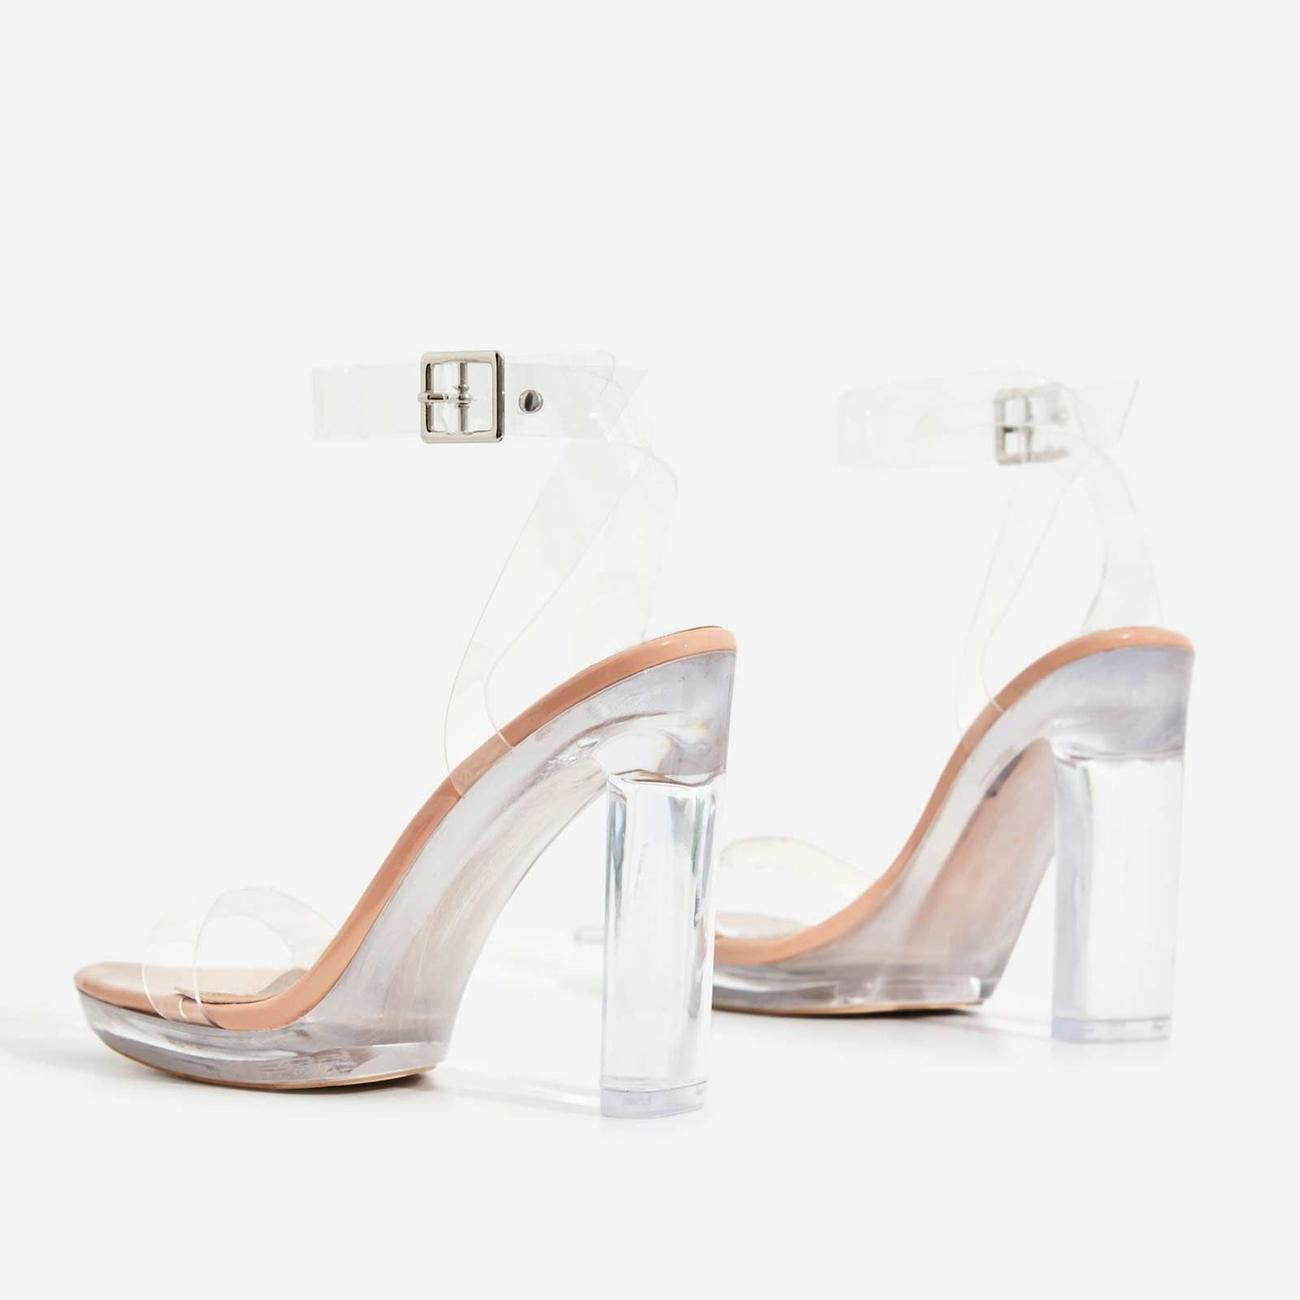 Icy Platform Barely There Perspex Thin Block Clear Heel In Nude Patent Image 3